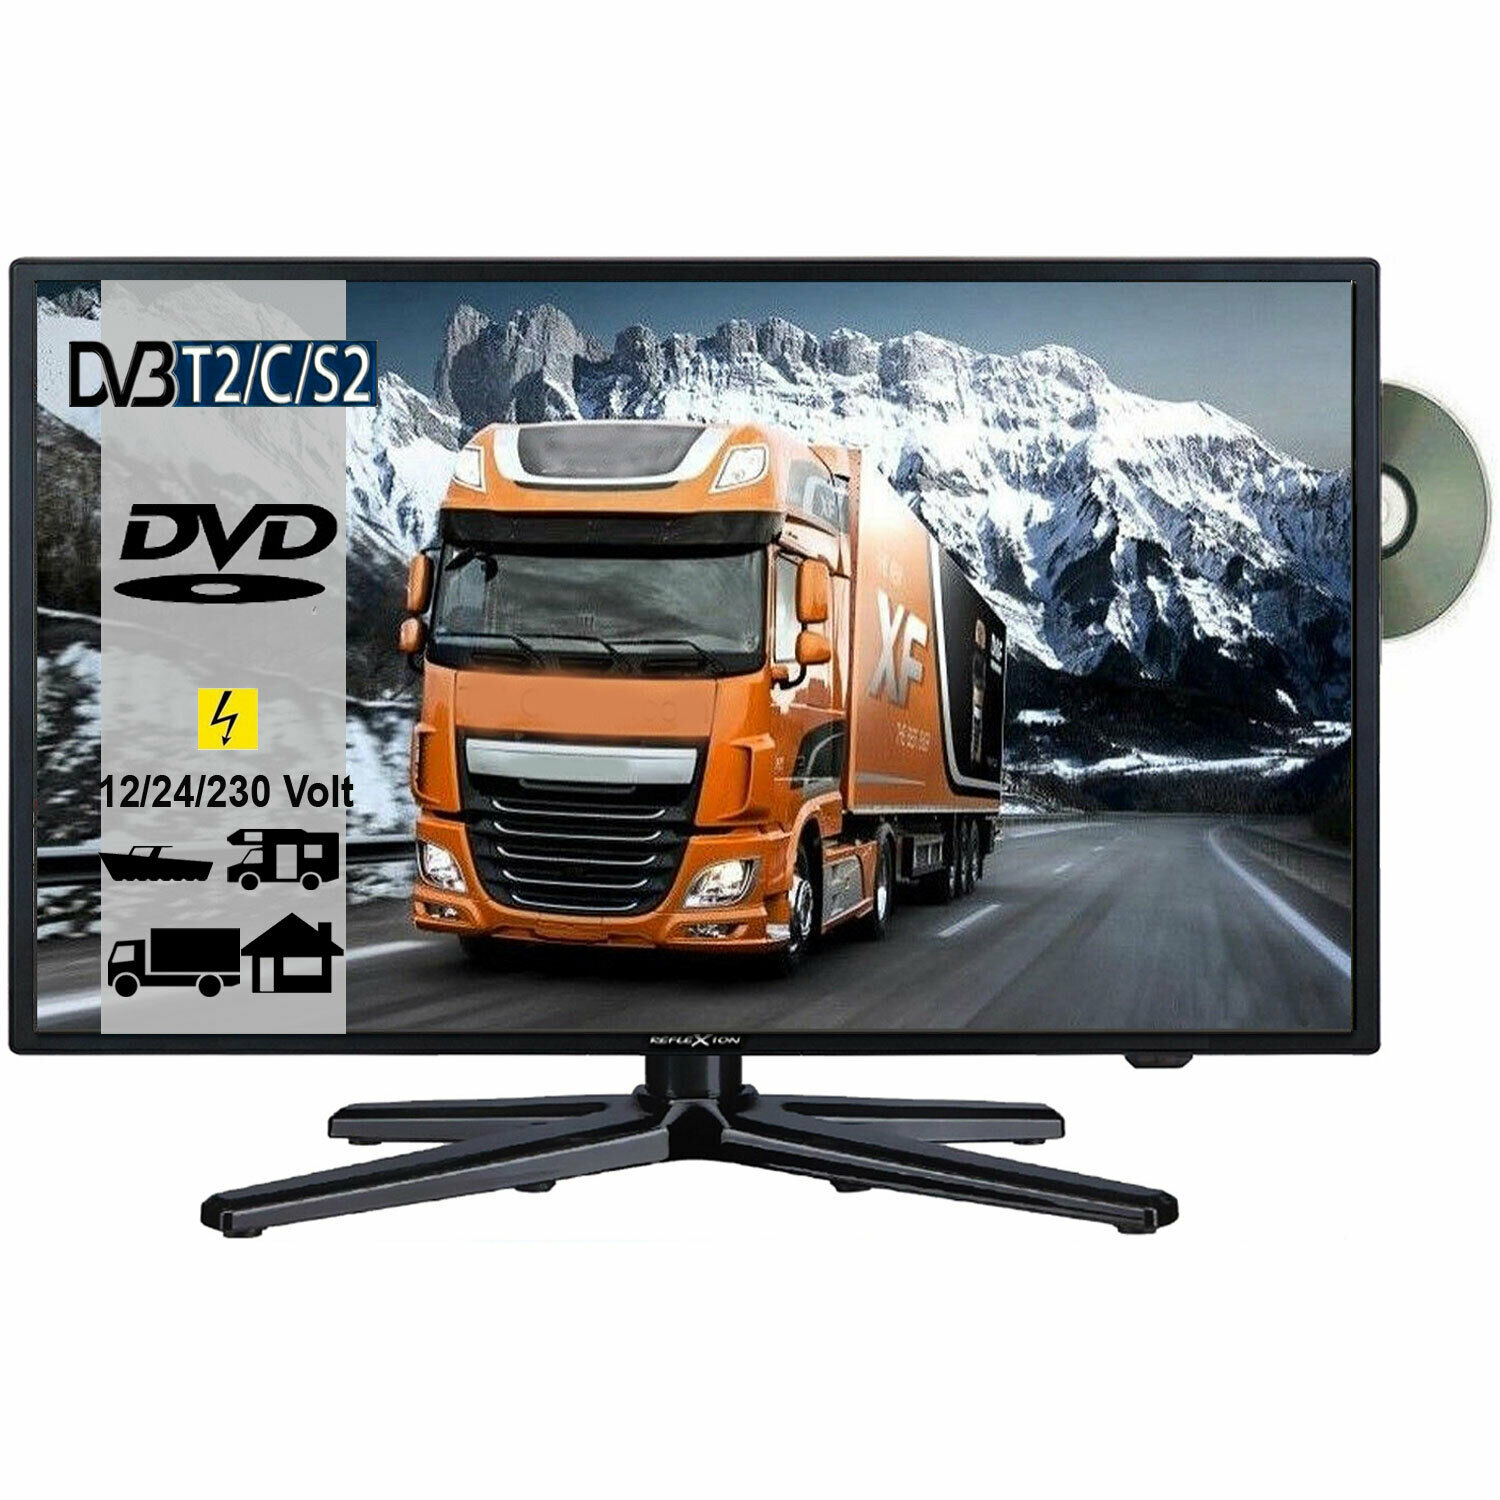 reflexion lddw22 led tv fernseher 22 zoll sat dvb s2 c t2. Black Bedroom Furniture Sets. Home Design Ideas